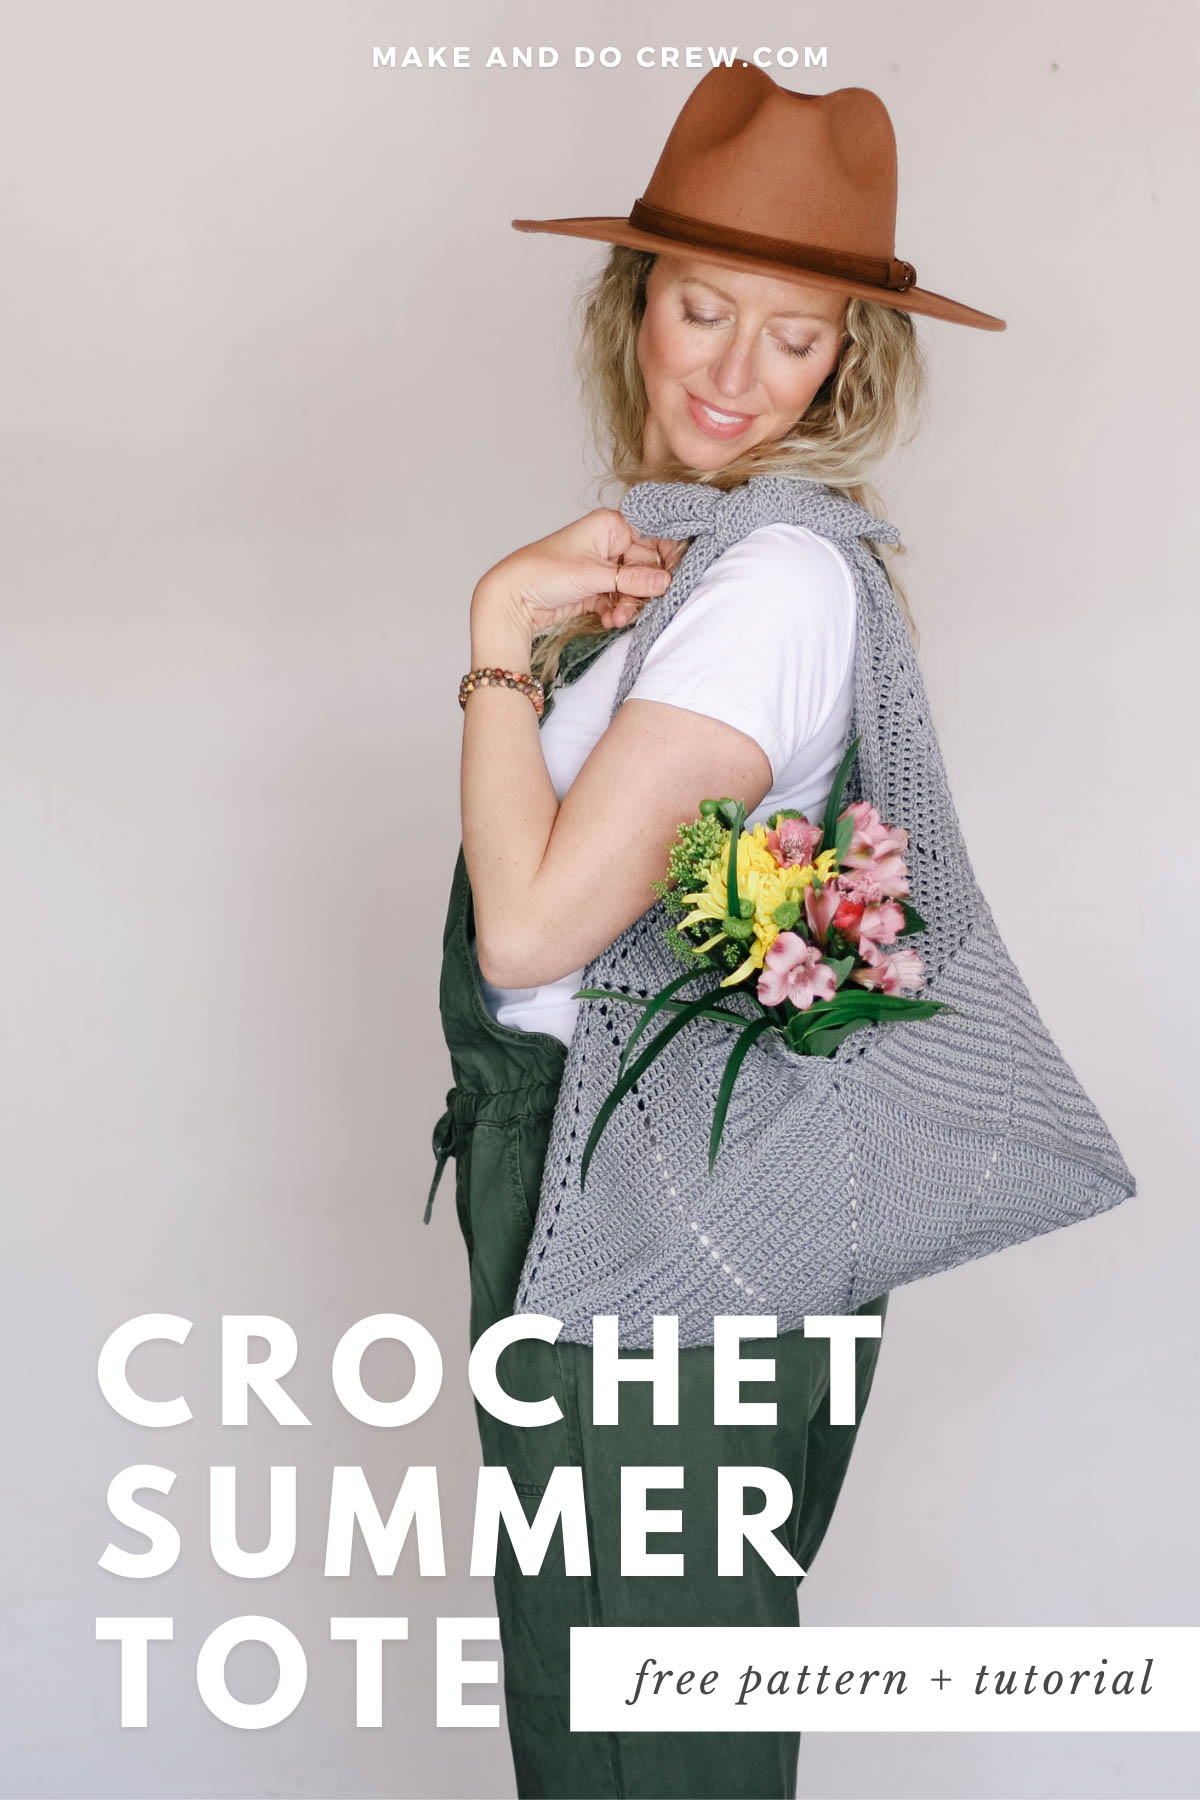 Woman carrying an over-the-shoulder origami crochet tote bag filled with flowers and made from 24/7 Cotton yarn.